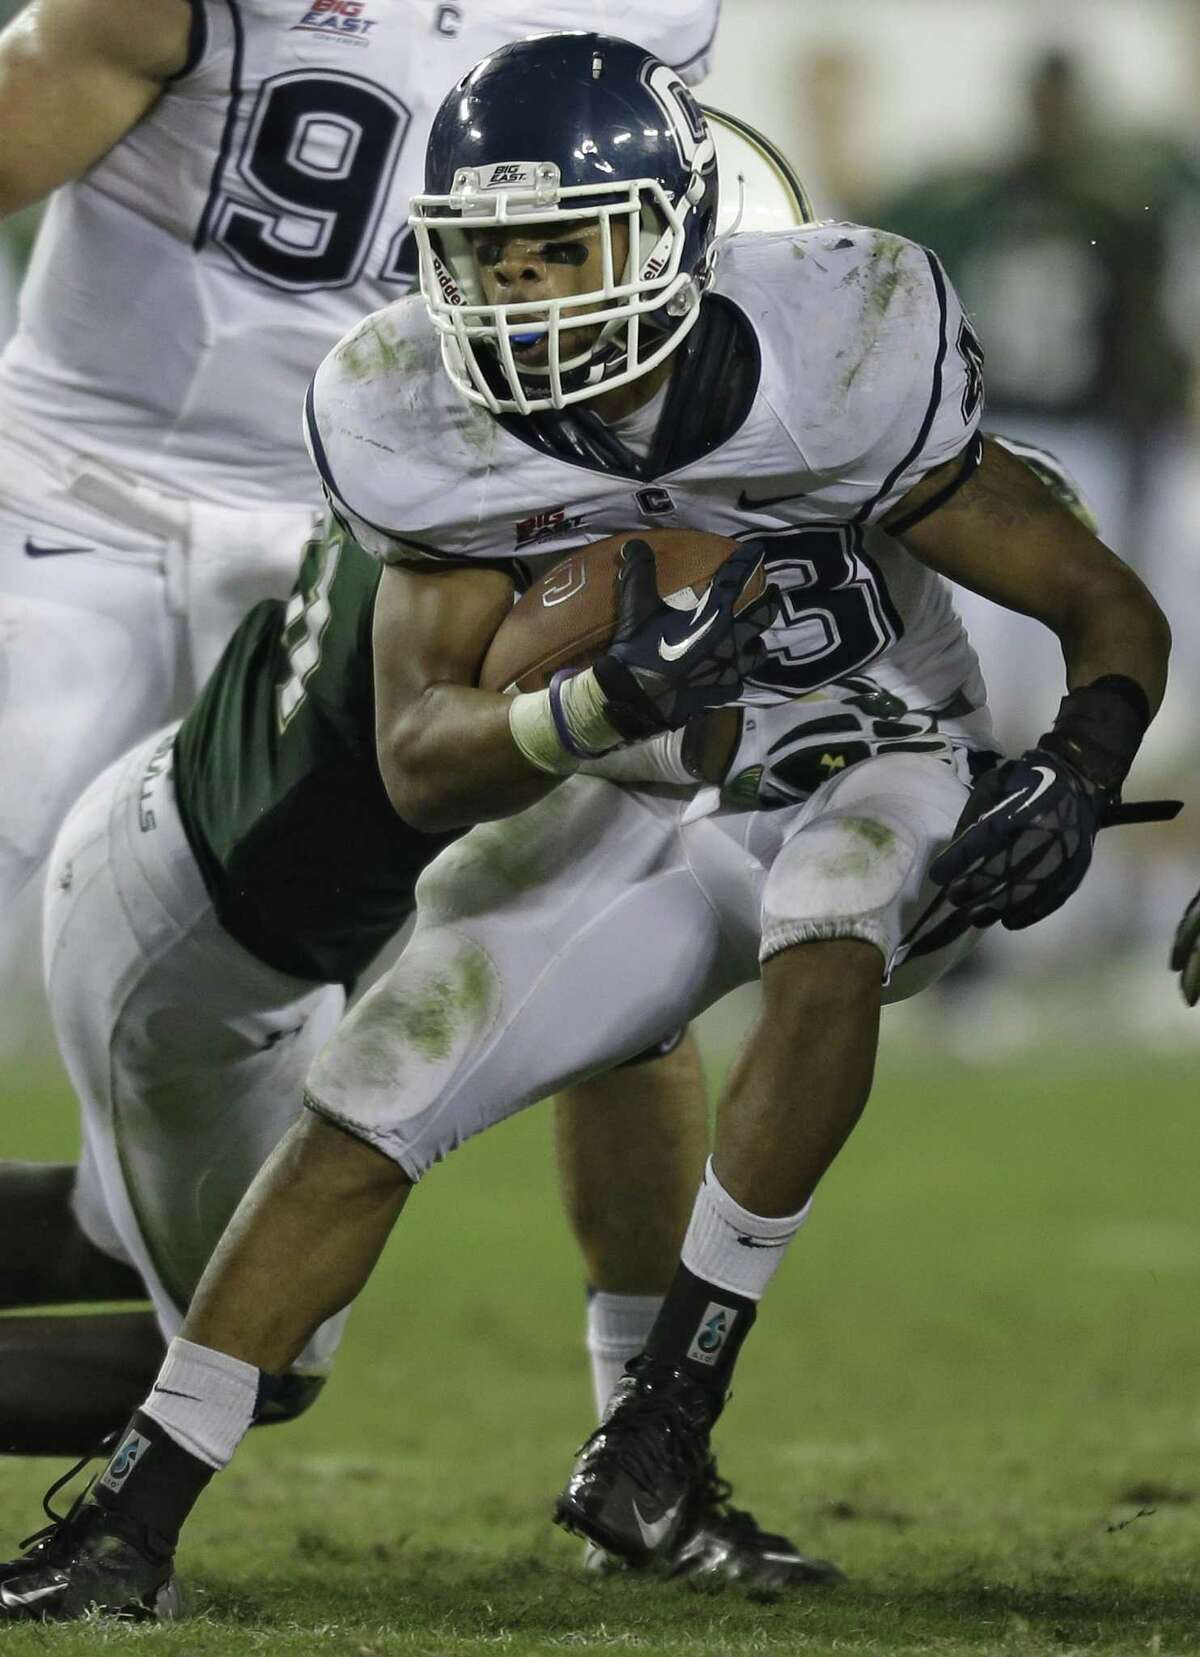 Connecticut running back Lyle McCombs (43) runs with the ball during the fourth quarter of an NCAA college football game against South Florida Saturday, Nov. 3, 2012, in Tampa, Fla. (AP Photo/Chris O'Meara)